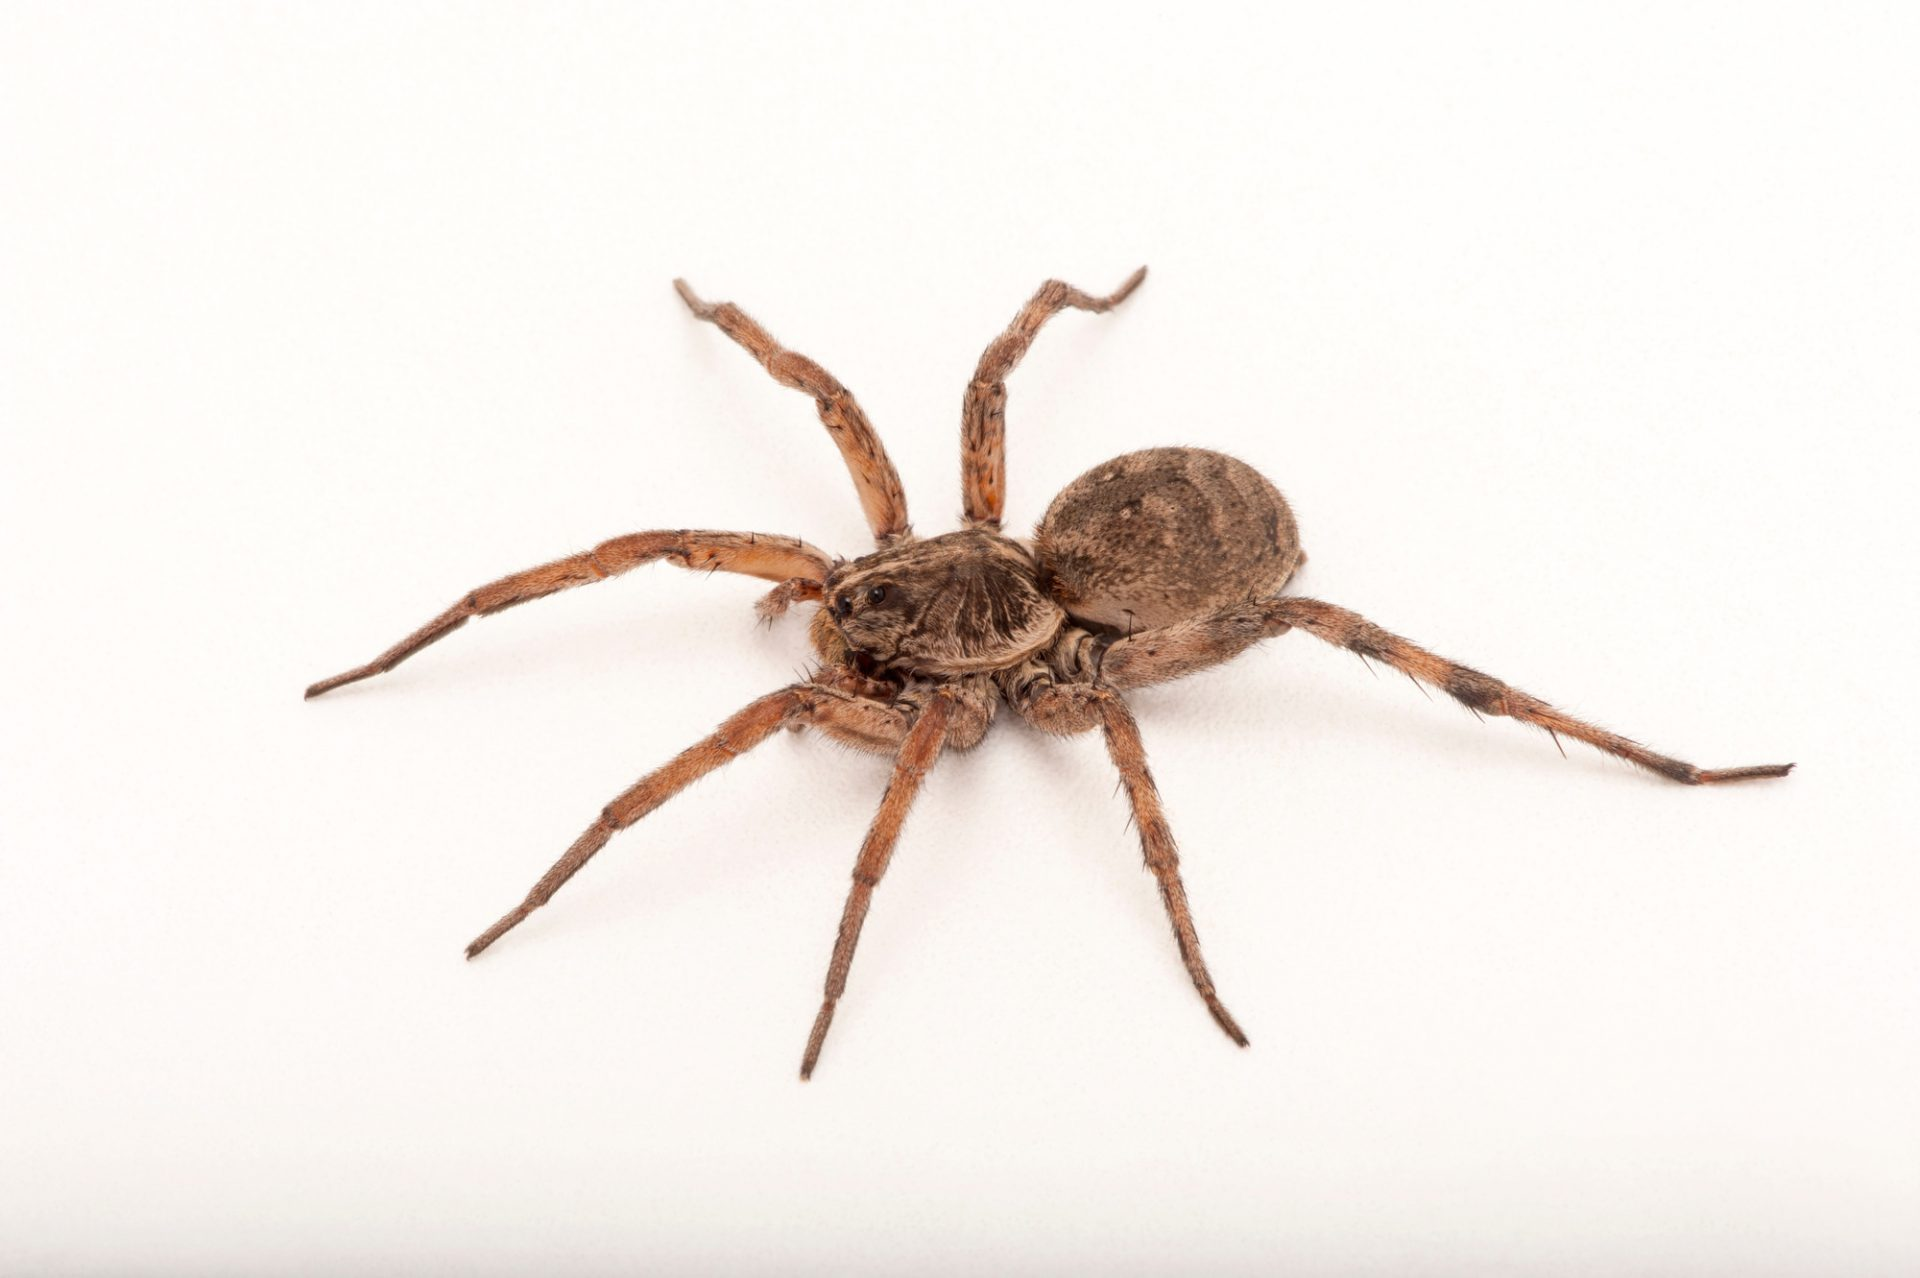 A Carolina wolf spider (Hogna carolinensis) at the Fort Worth Zoo.